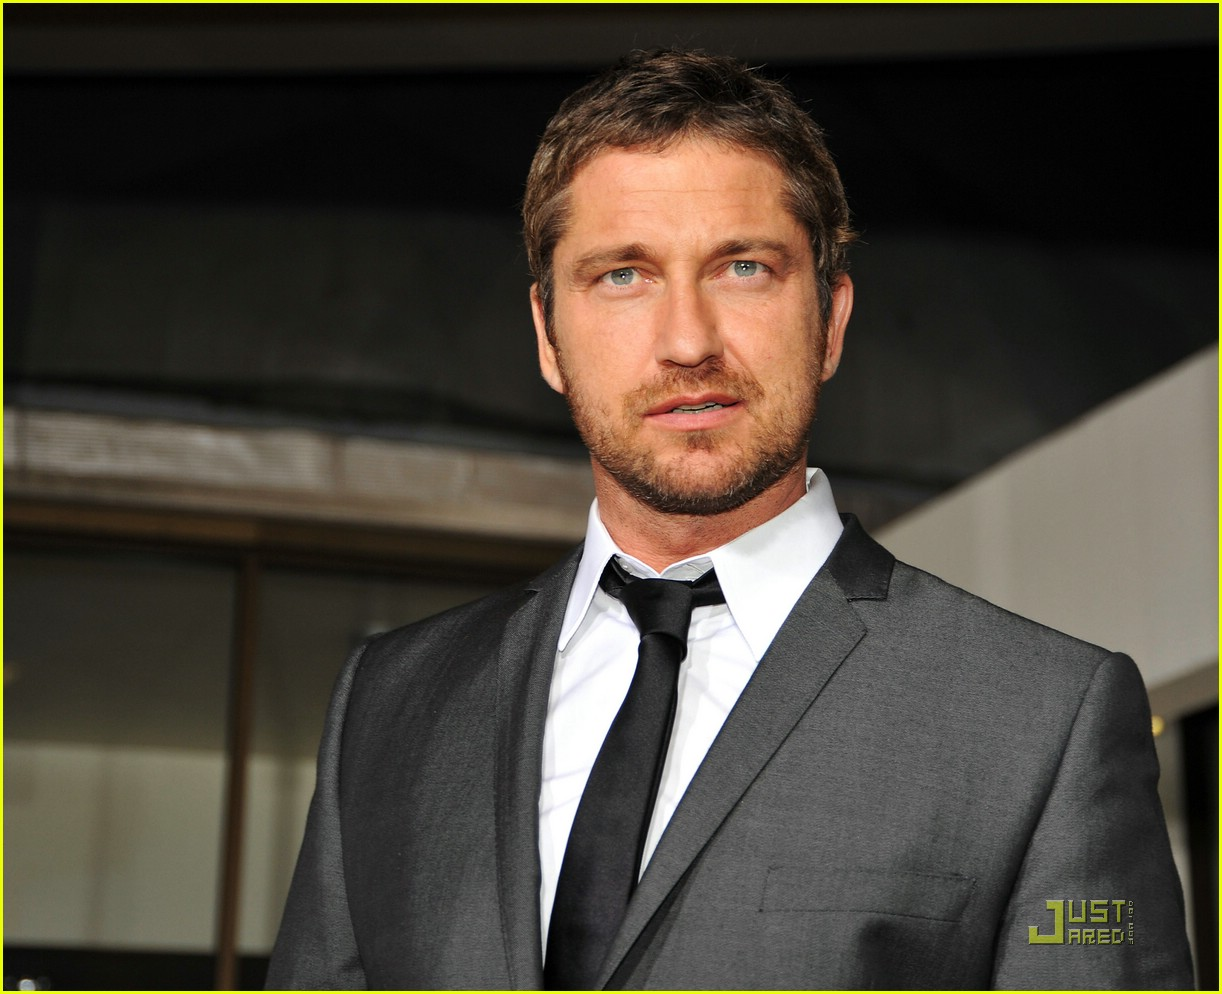 Gerard Butler On Pinterest